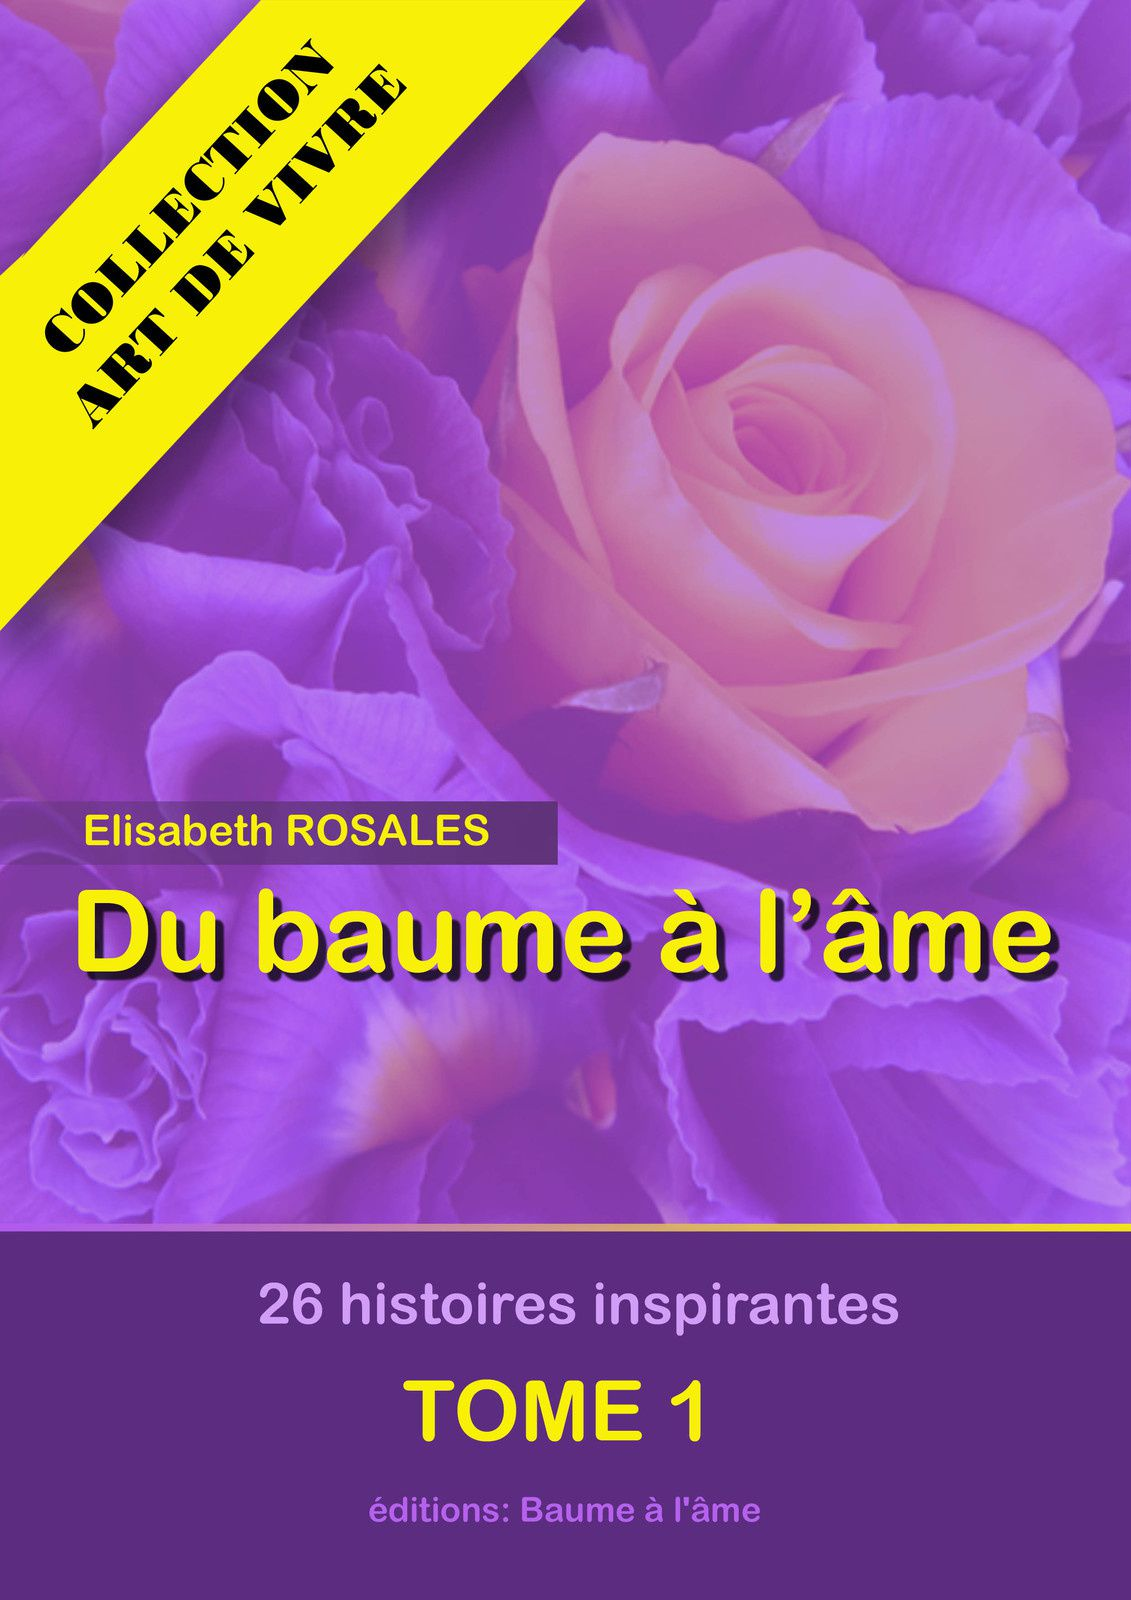 Disponible à la vente : version e-book sur amazon, version papier sur lulu.com